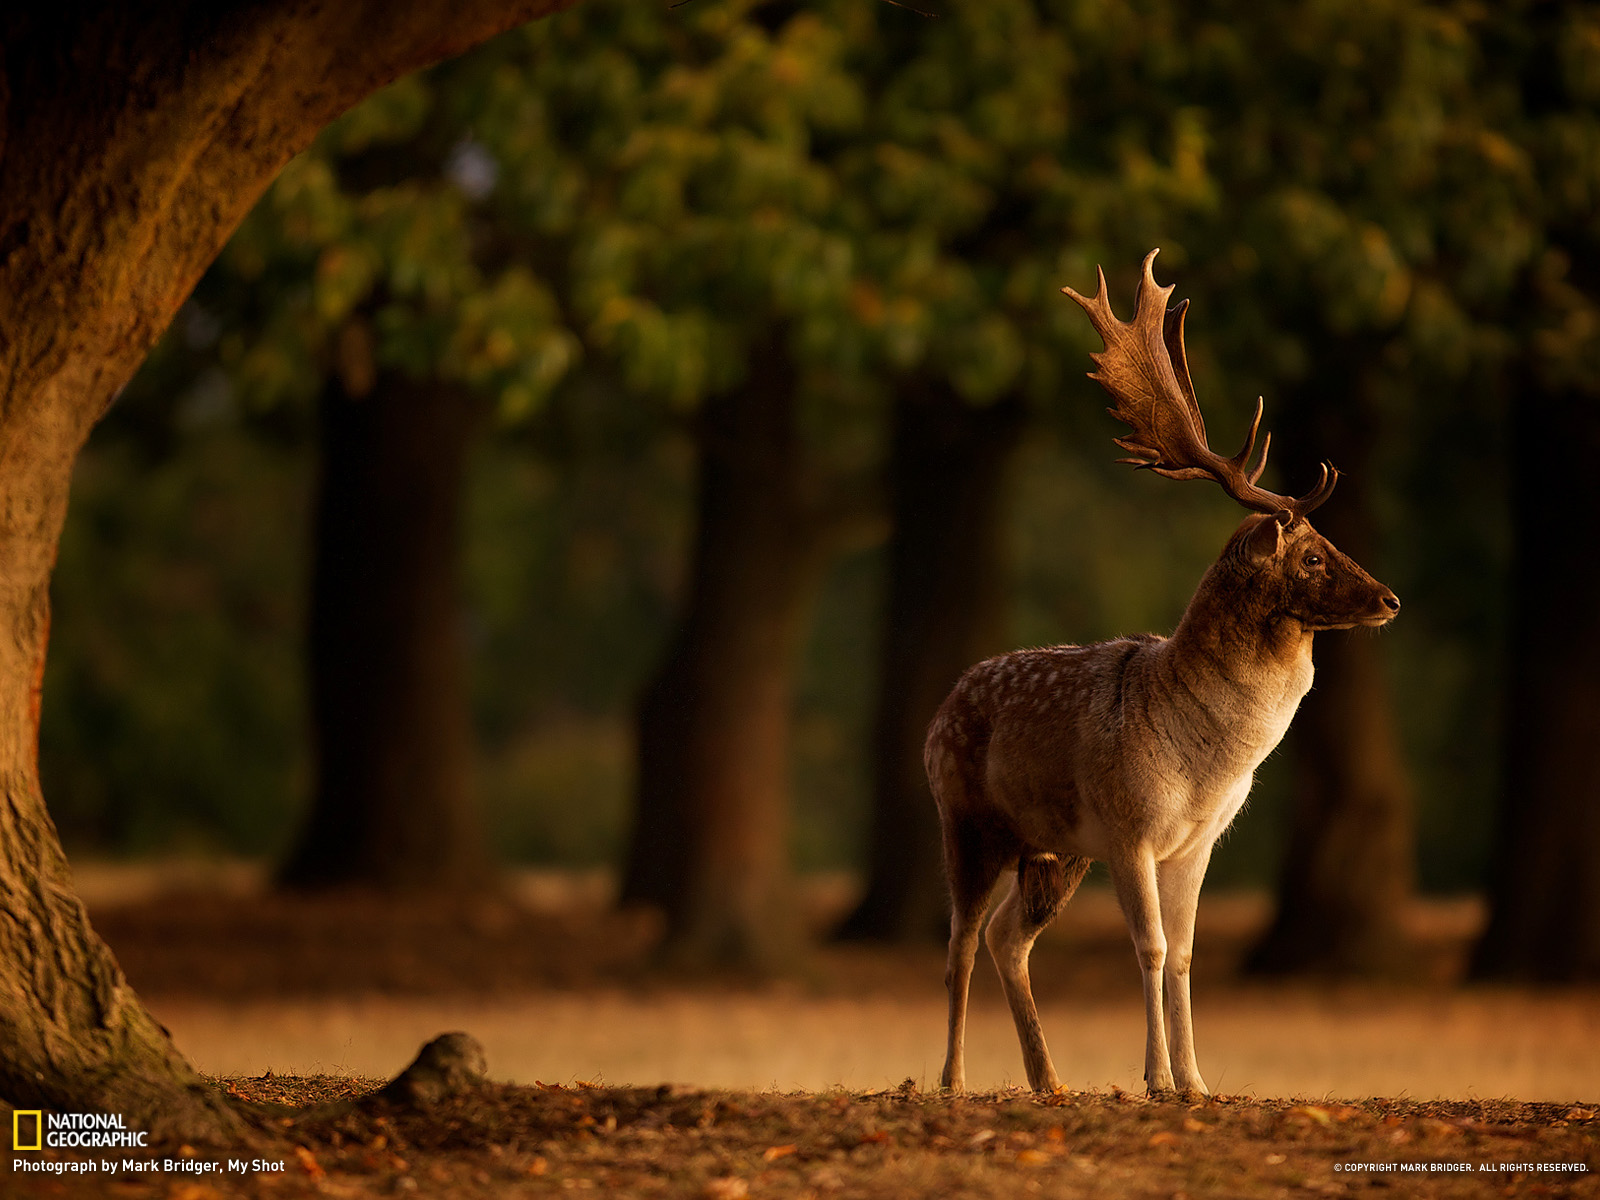 Deer wallpaper x